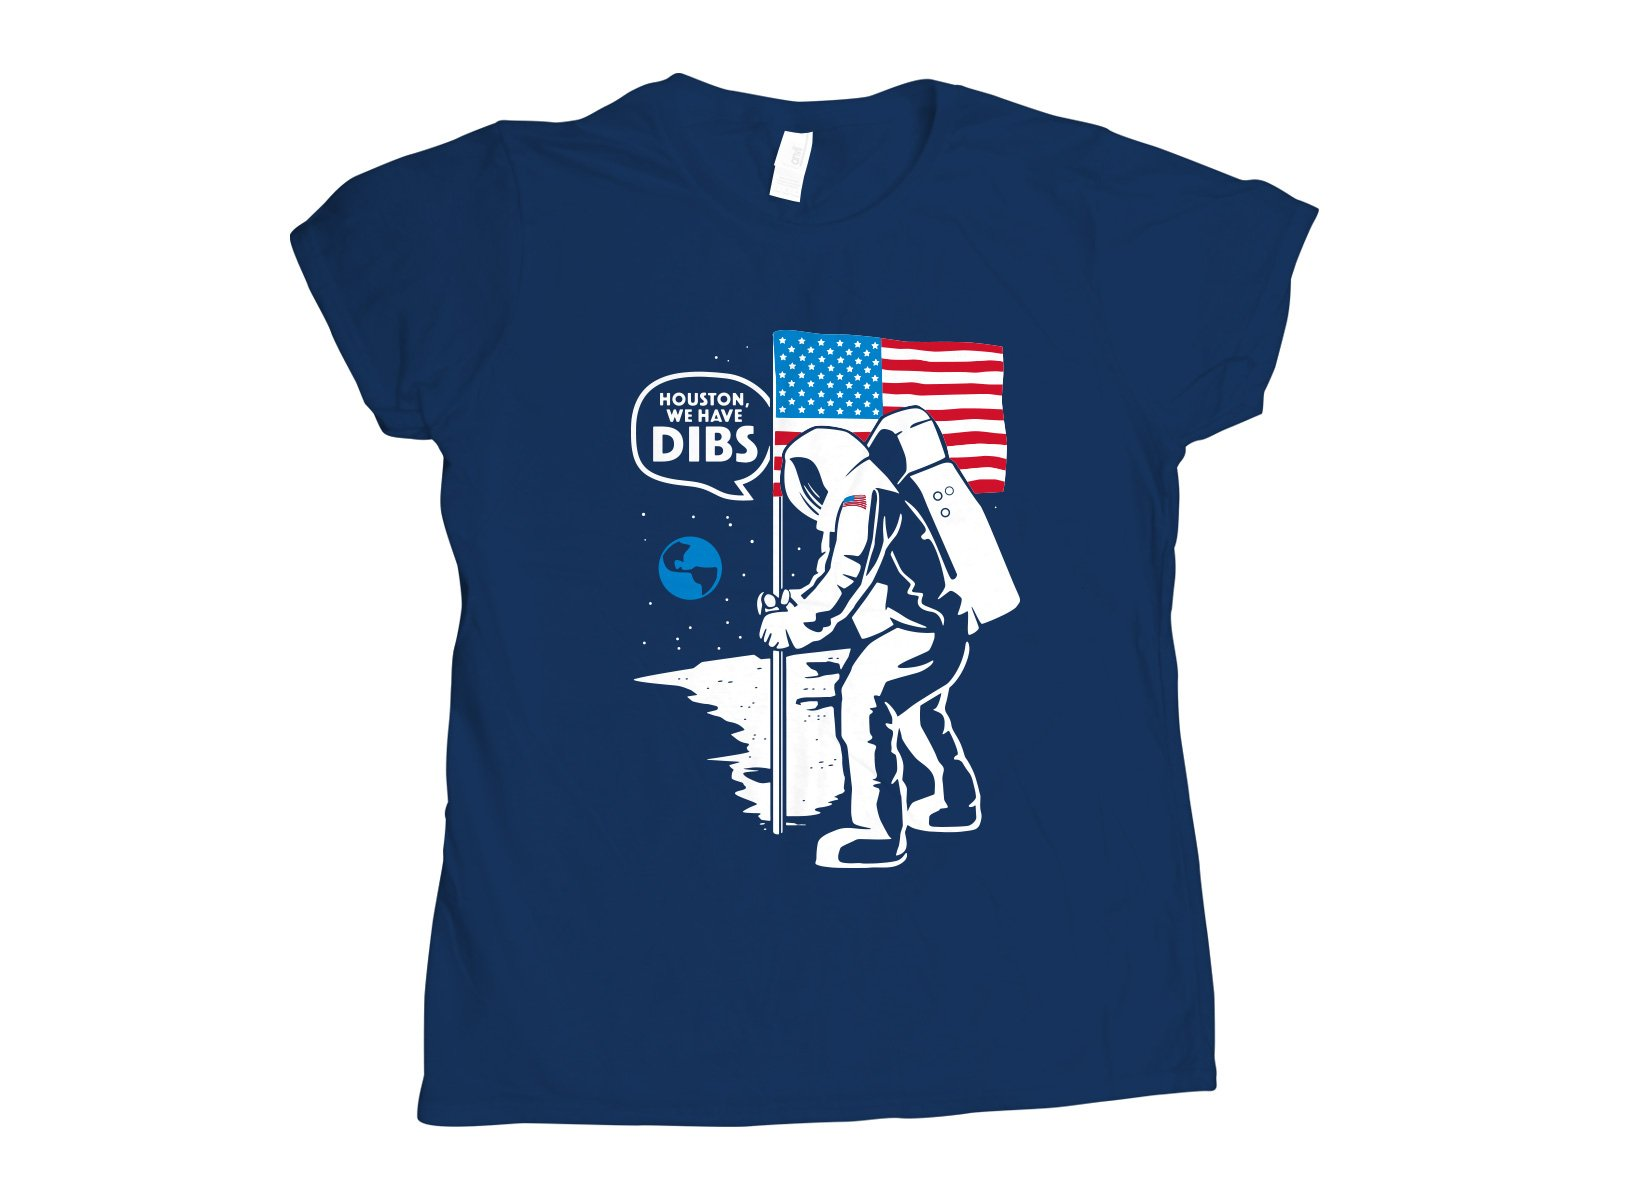 We Have Dibs on Womens T-Shirt